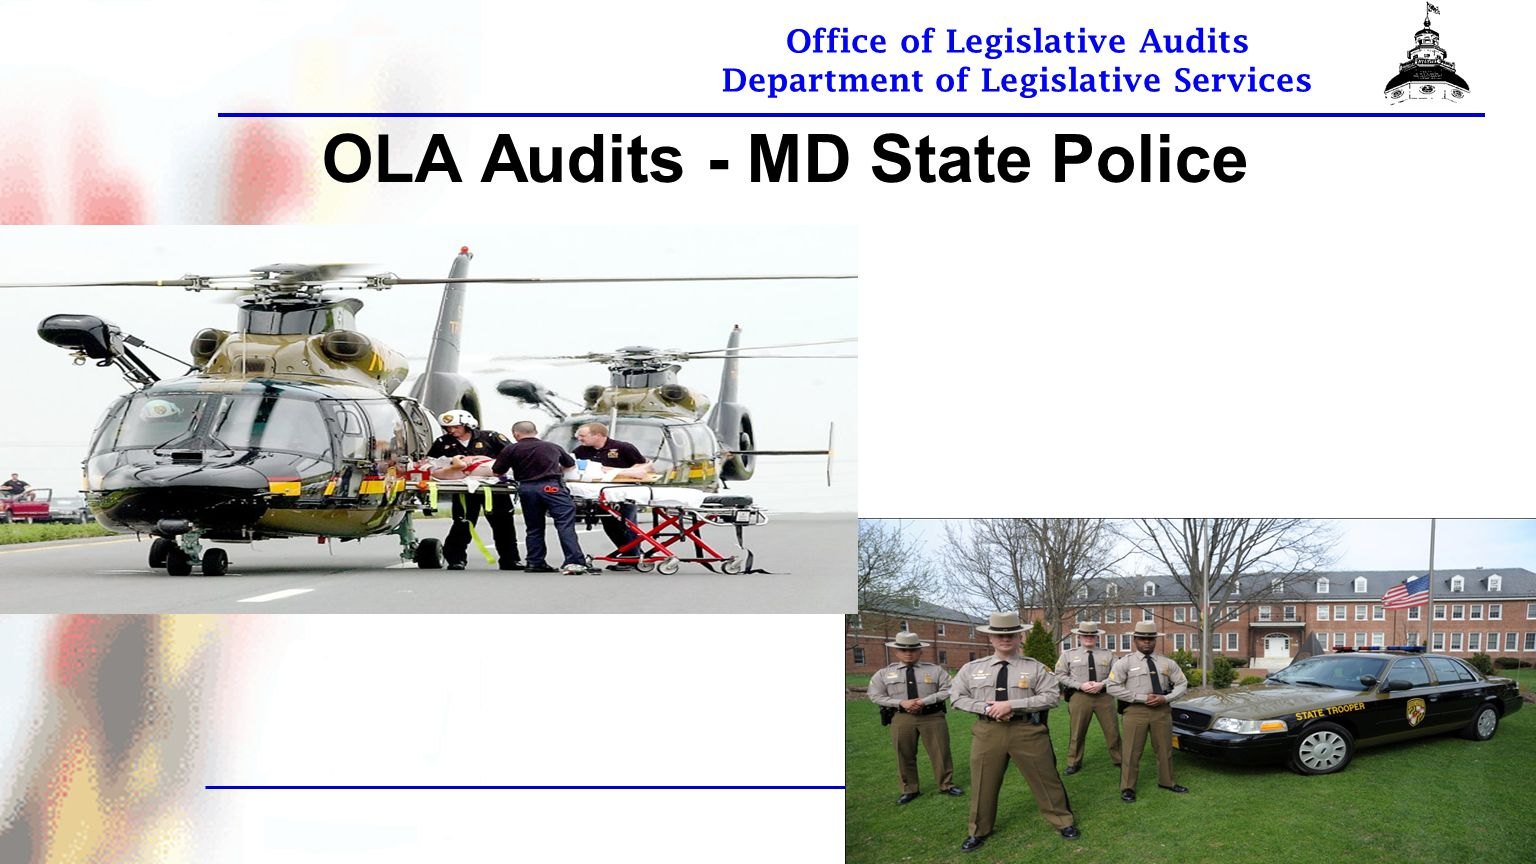 Office of Legislative Audits Department of Legislative Services OLA Audits - MD State Police